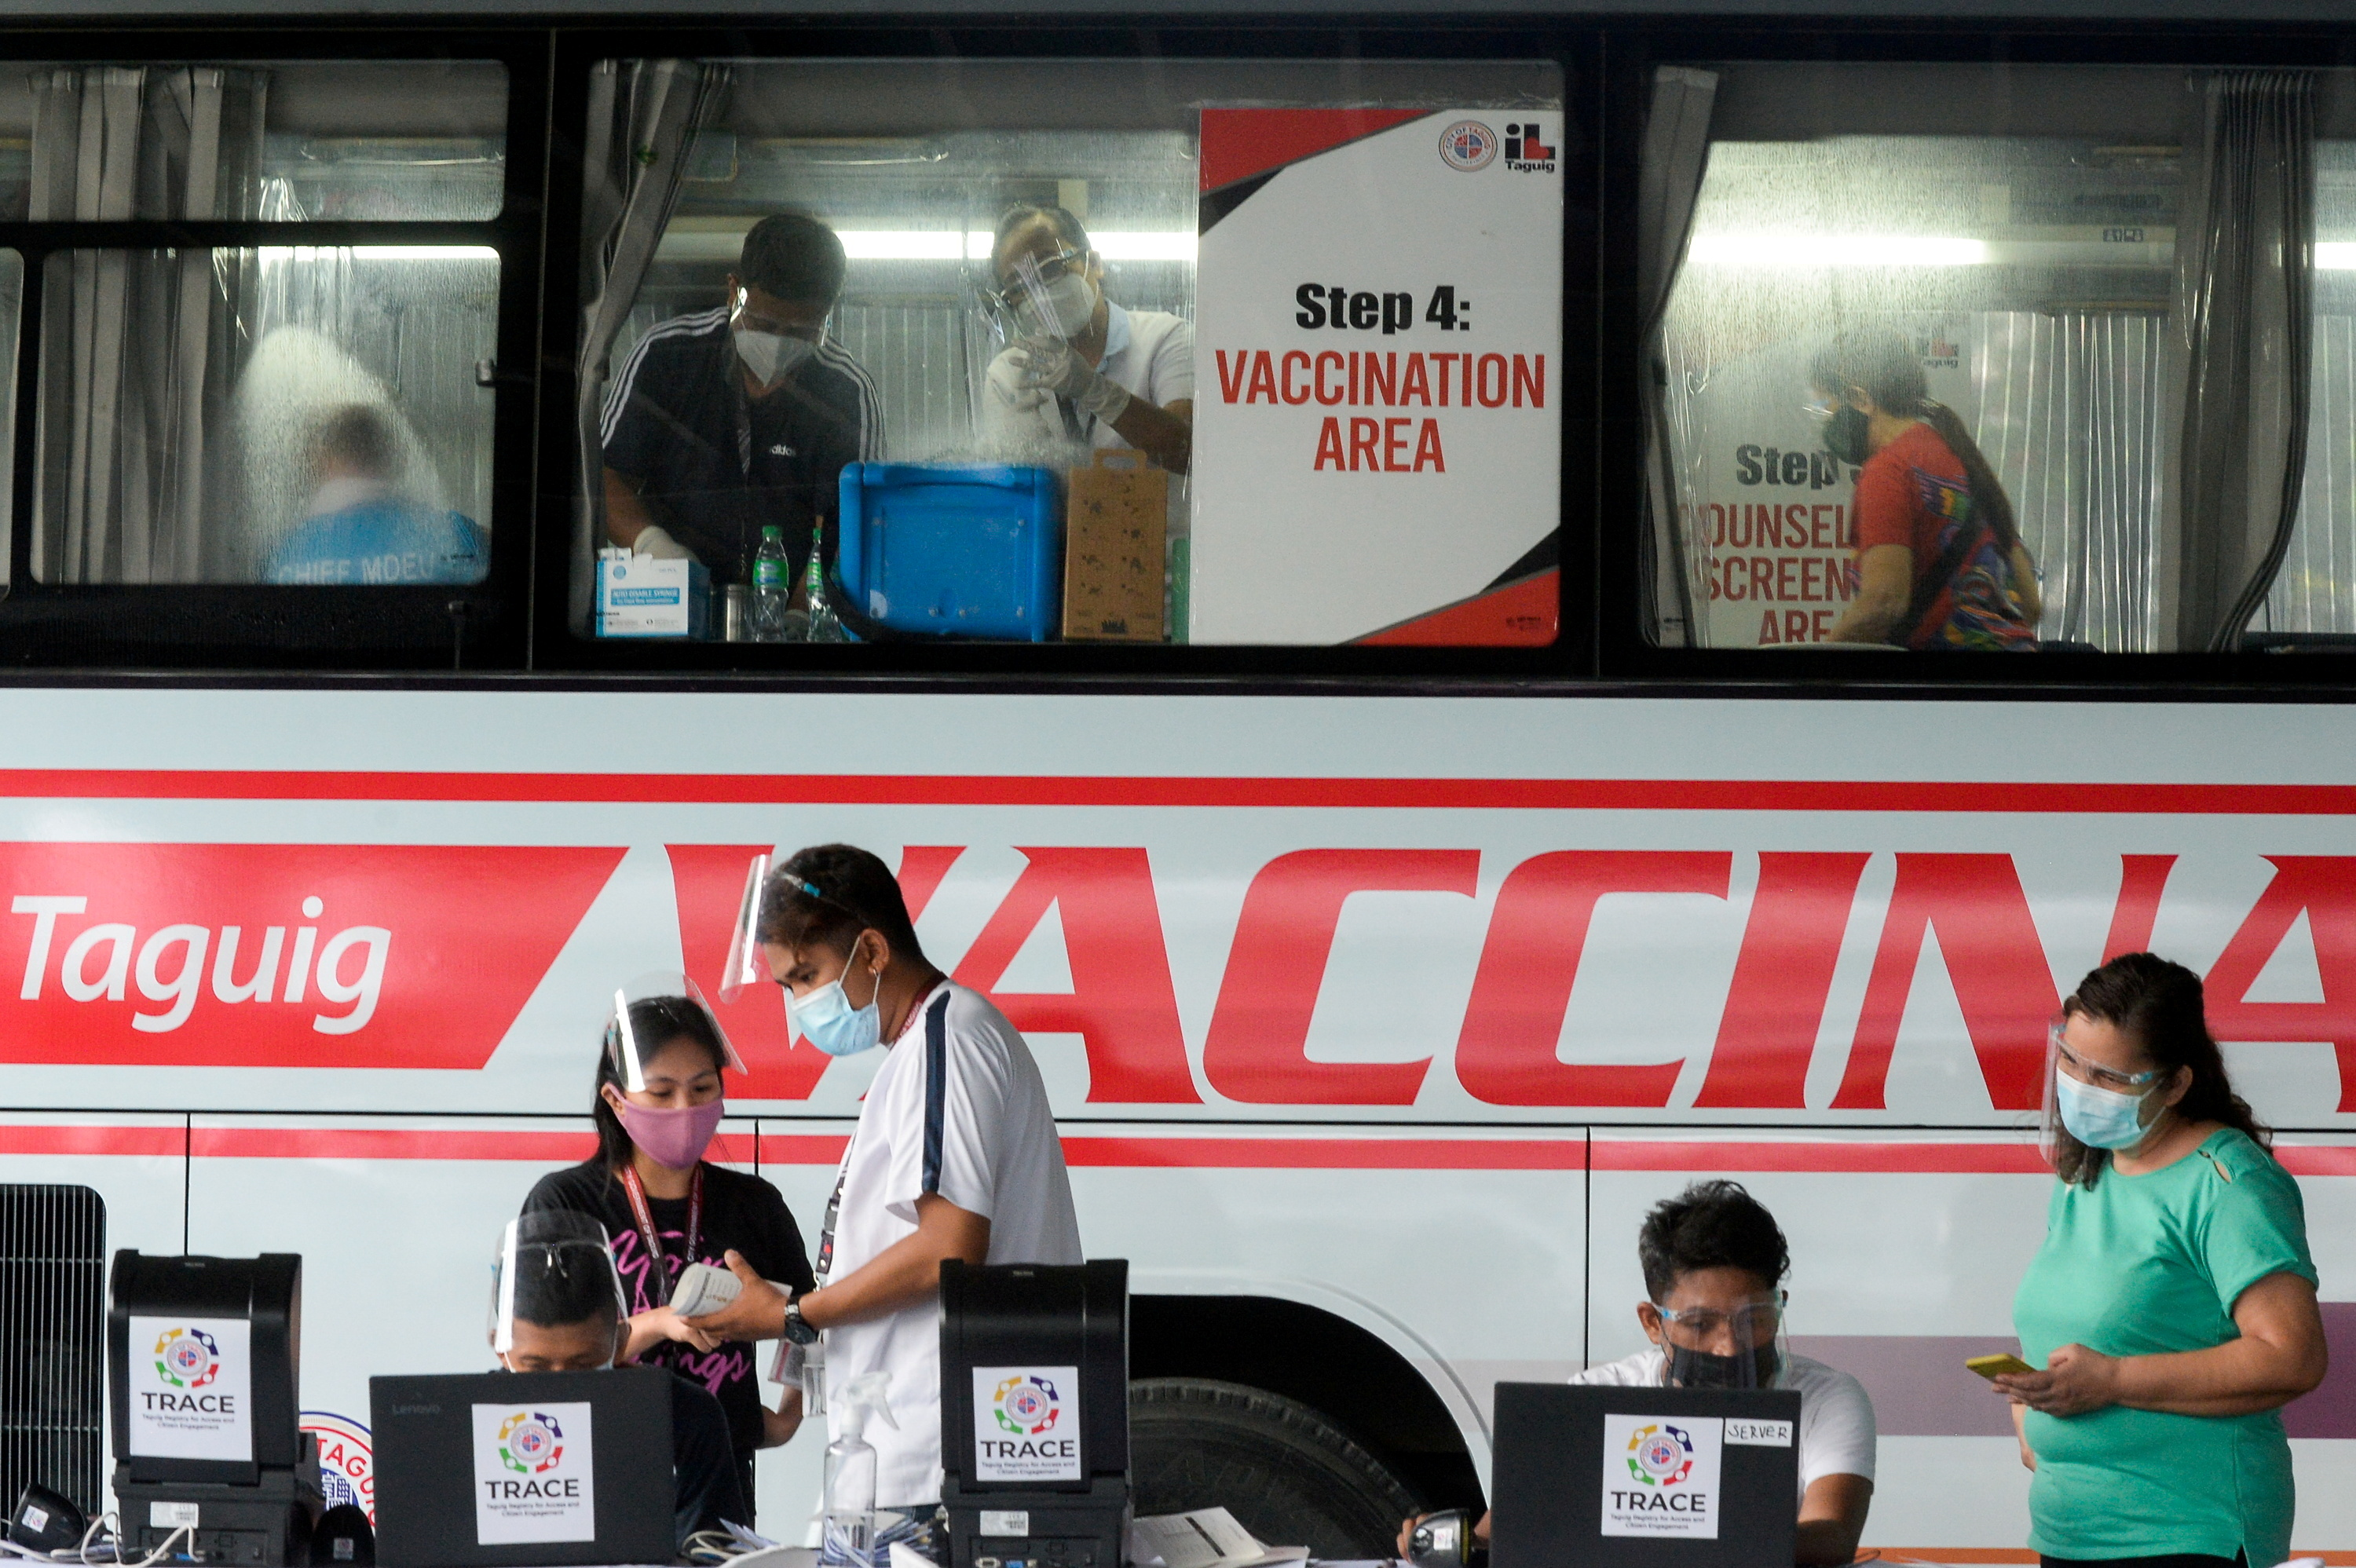 Health workers encode information and prepare vaccines against the coronavirus disease (COVID-19) at a mobile vaccination site in Taguig, Metro Manila, Philippines, May 21, 2021. REUTERS/Lisa Marie David